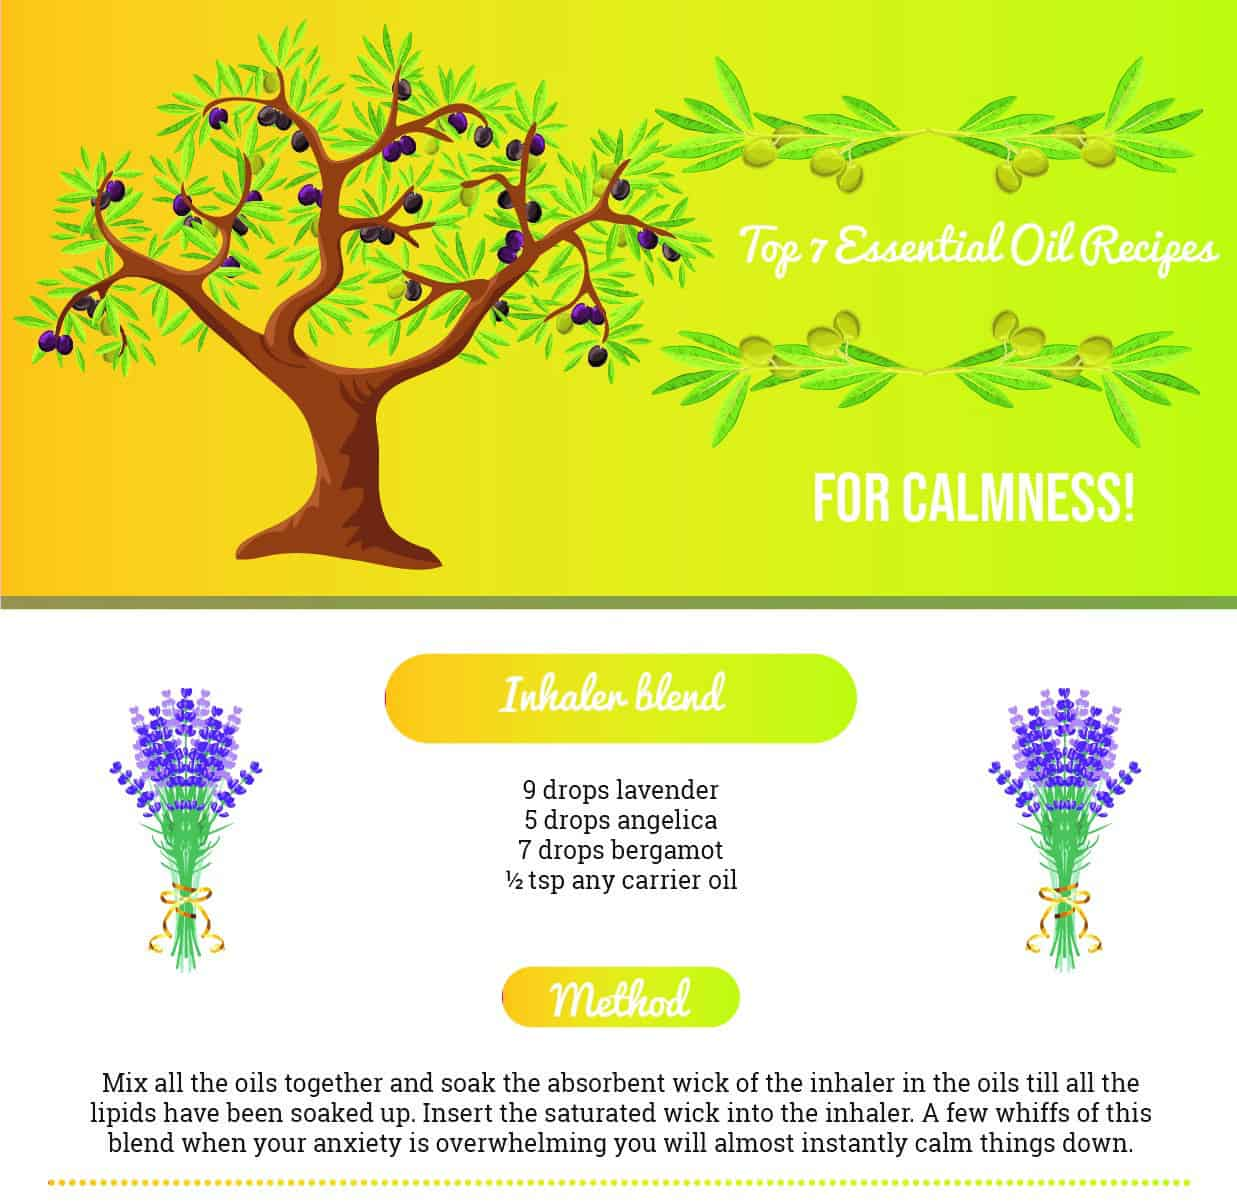 Get A Grip On Life's Negativities By Using Essential Oils For Calmness! Essential Oil Benefits